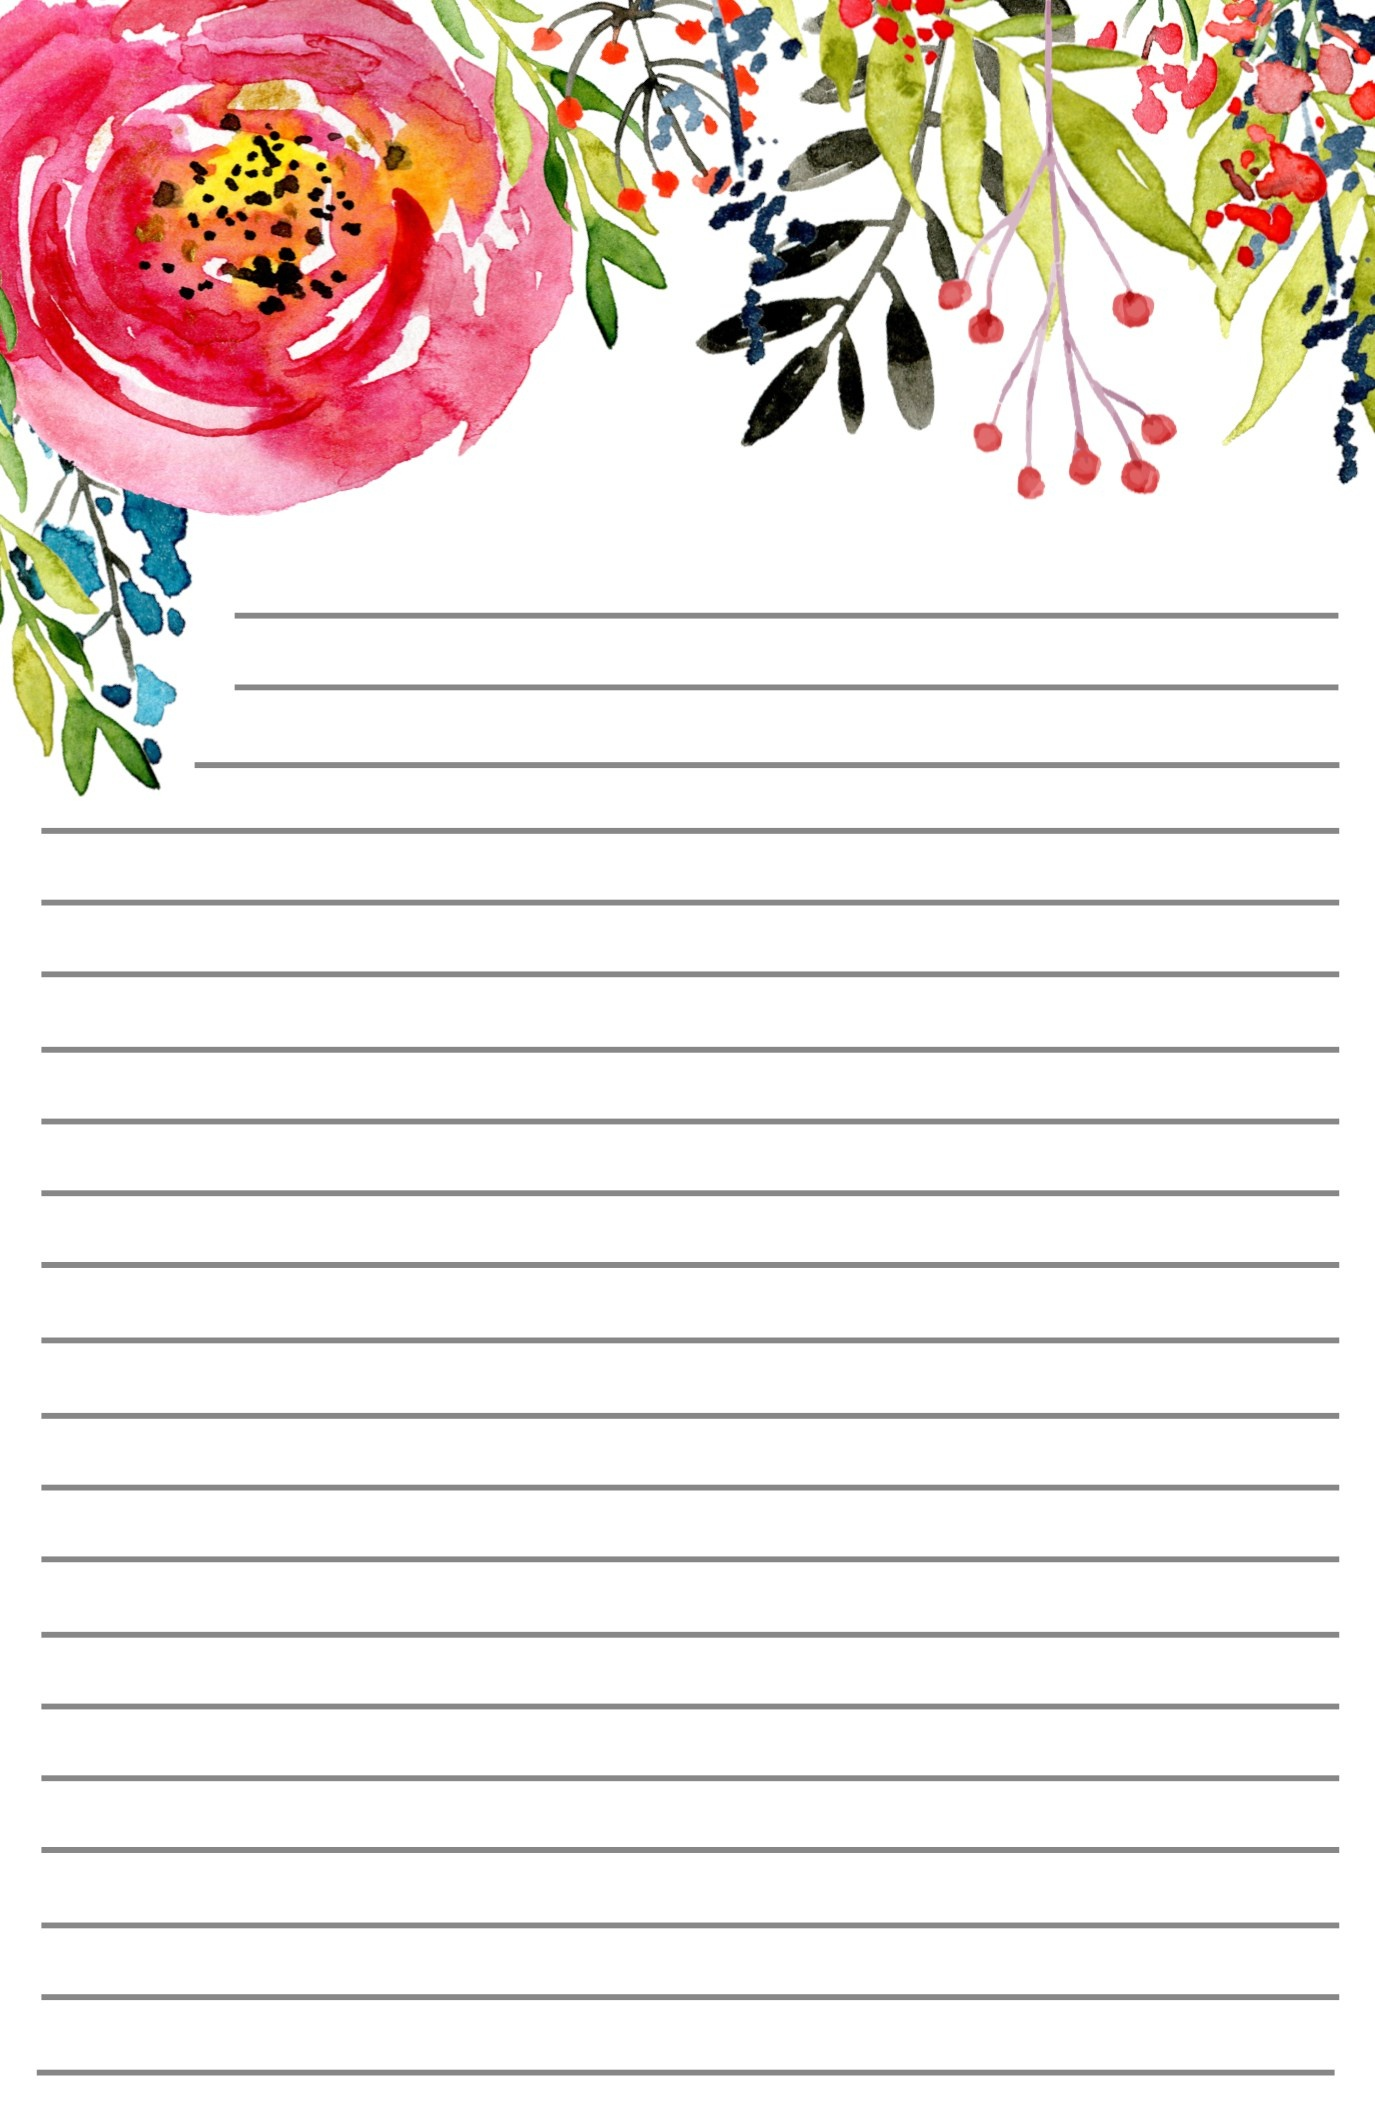 Free Printable Floral Stationery - Paper Trail Design - Free Printable Lined Stationery